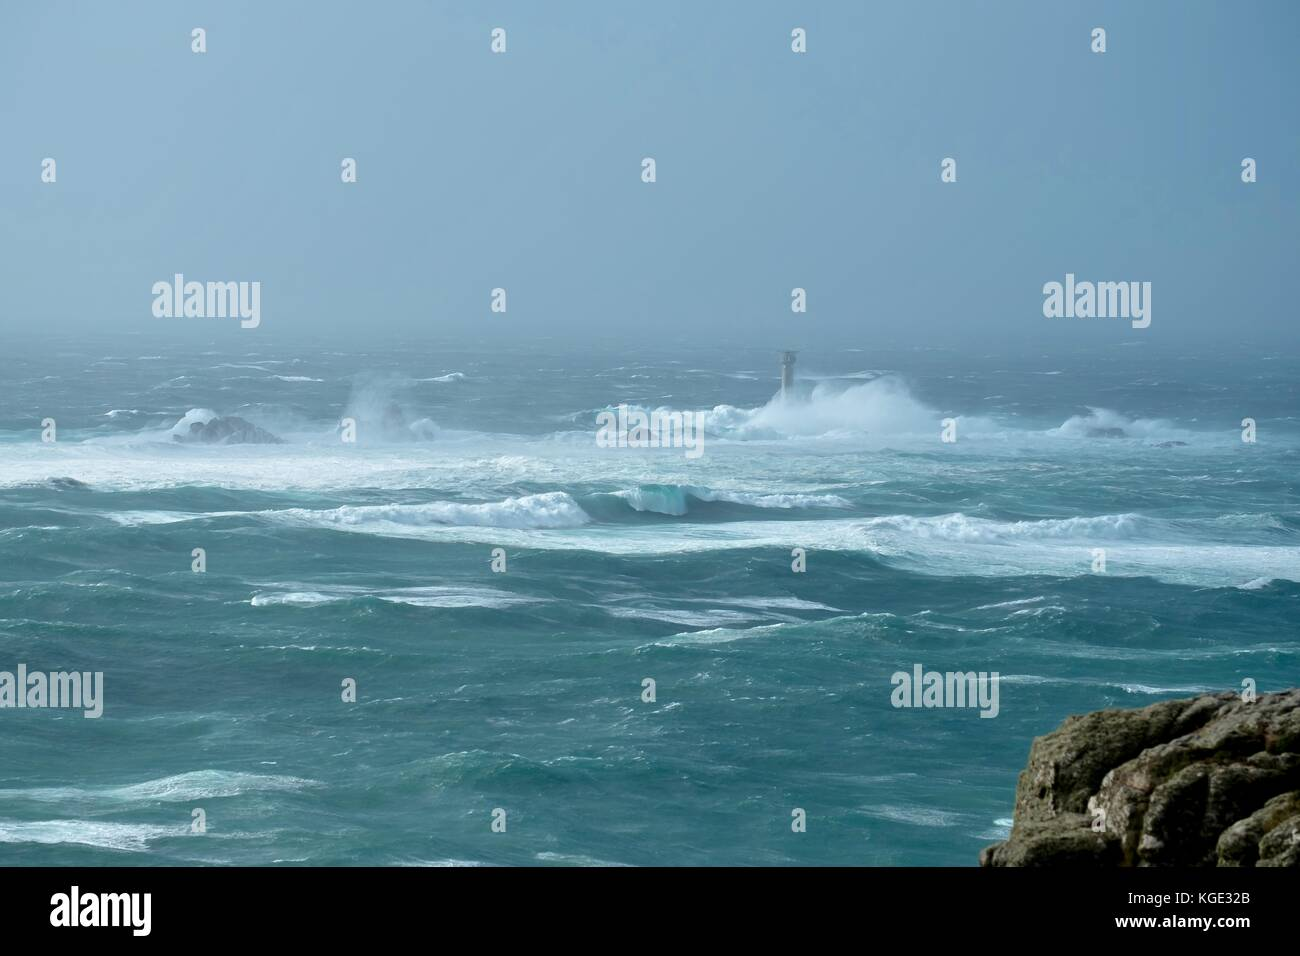 A storm hitting Lands End in Cornwall with waves smashing into the 35 metre tall Longships lighthouse. - Stock Image